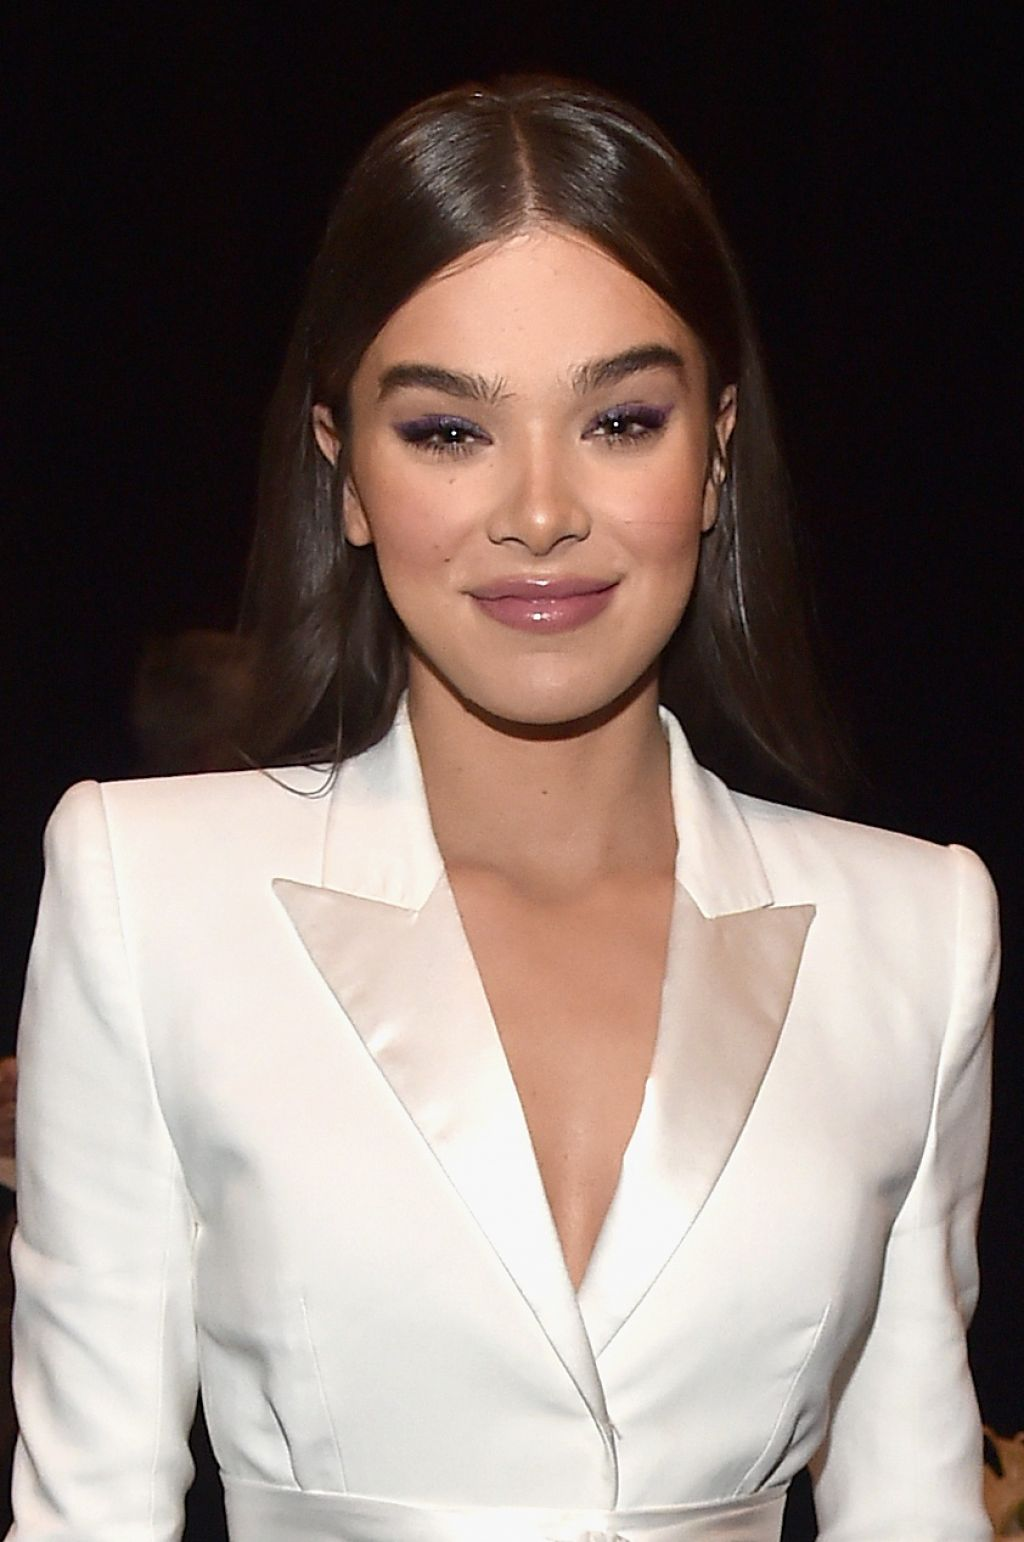 Hailee Steinfeld - Paramount Pictures Presentation at CinemaCon 2018 in Las Vegas